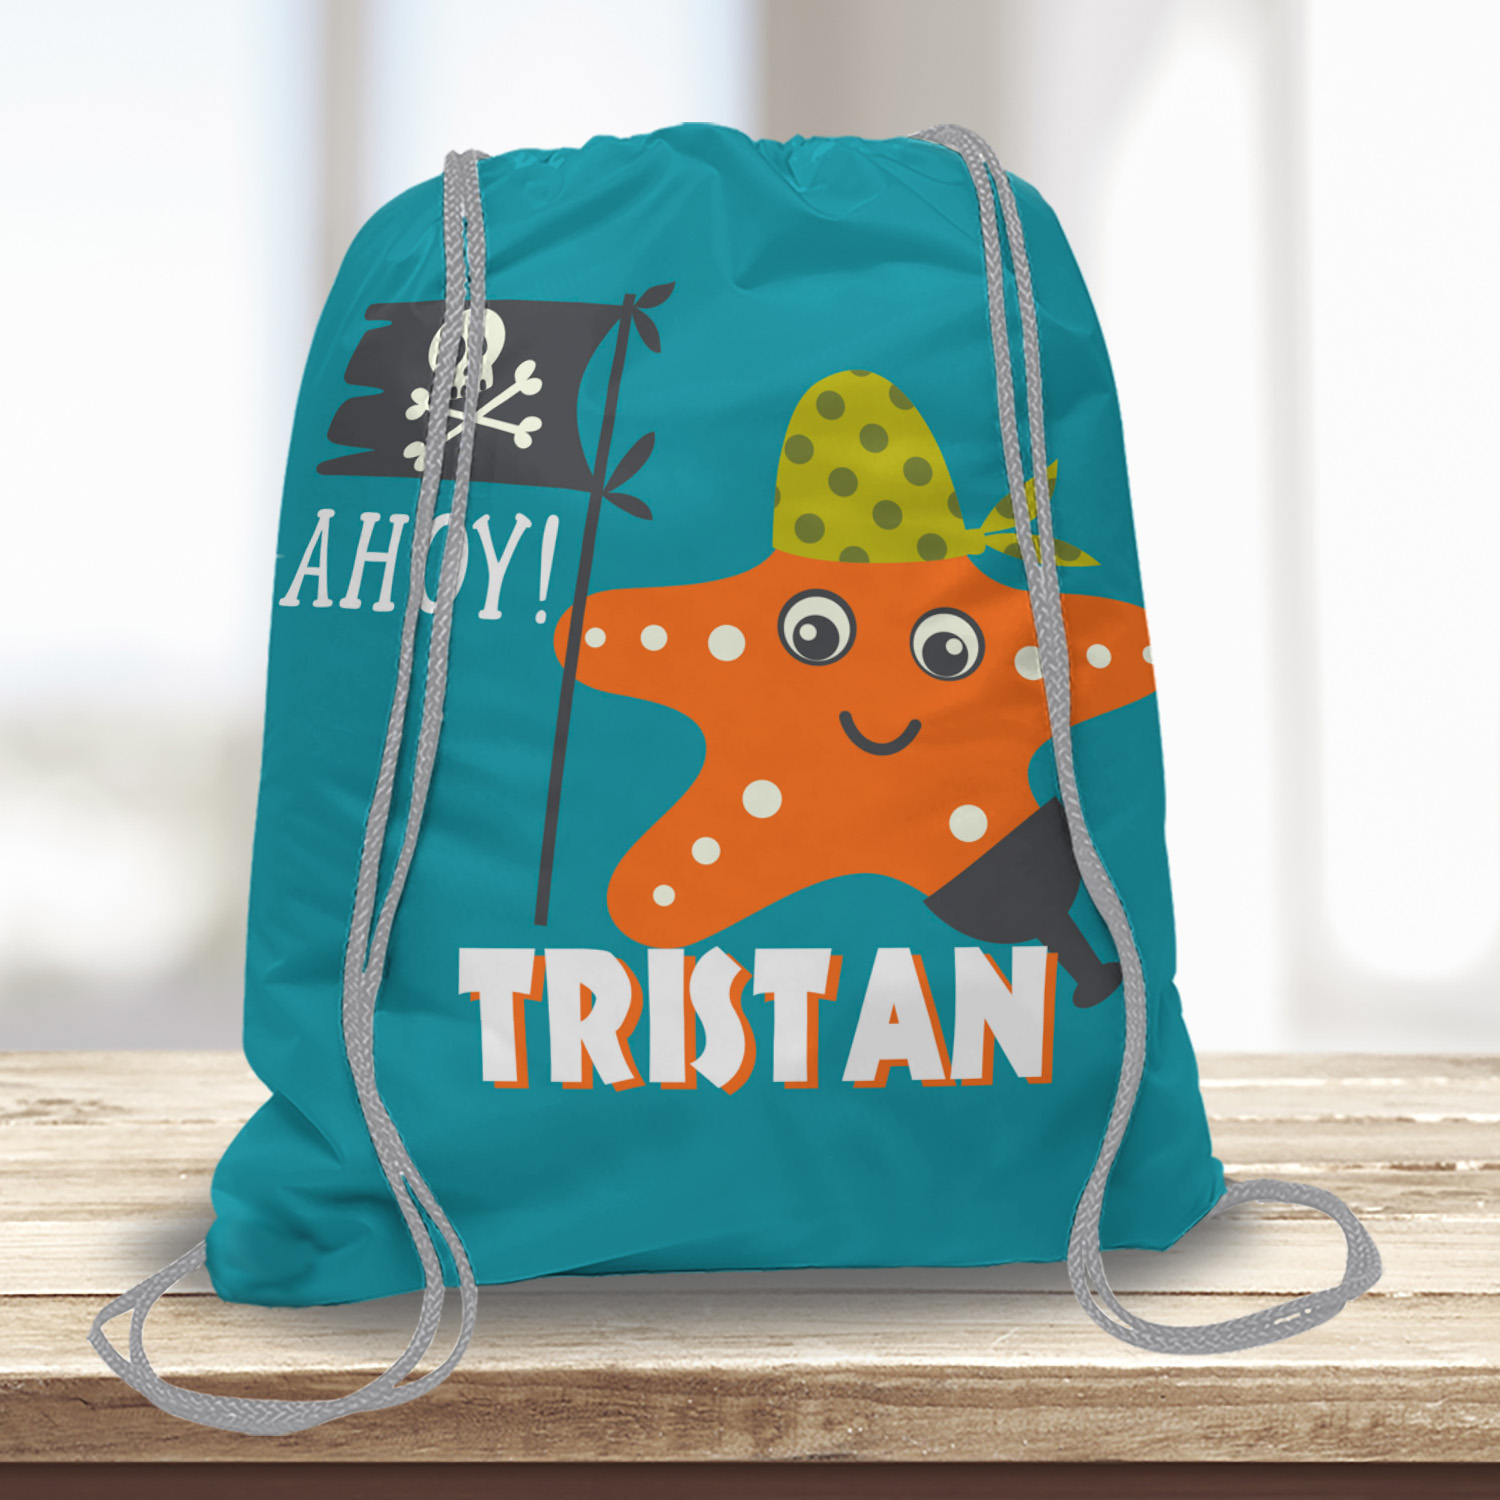 PKDST-00006-AhoyMateyPirateAdventure-DRAWSTRINGTOTEa Ahoy Matey! Pirate Adventure Kids Drawstring Tote Bag Backpack for Camp School Beach Sports Travel by Pickleberry Kids